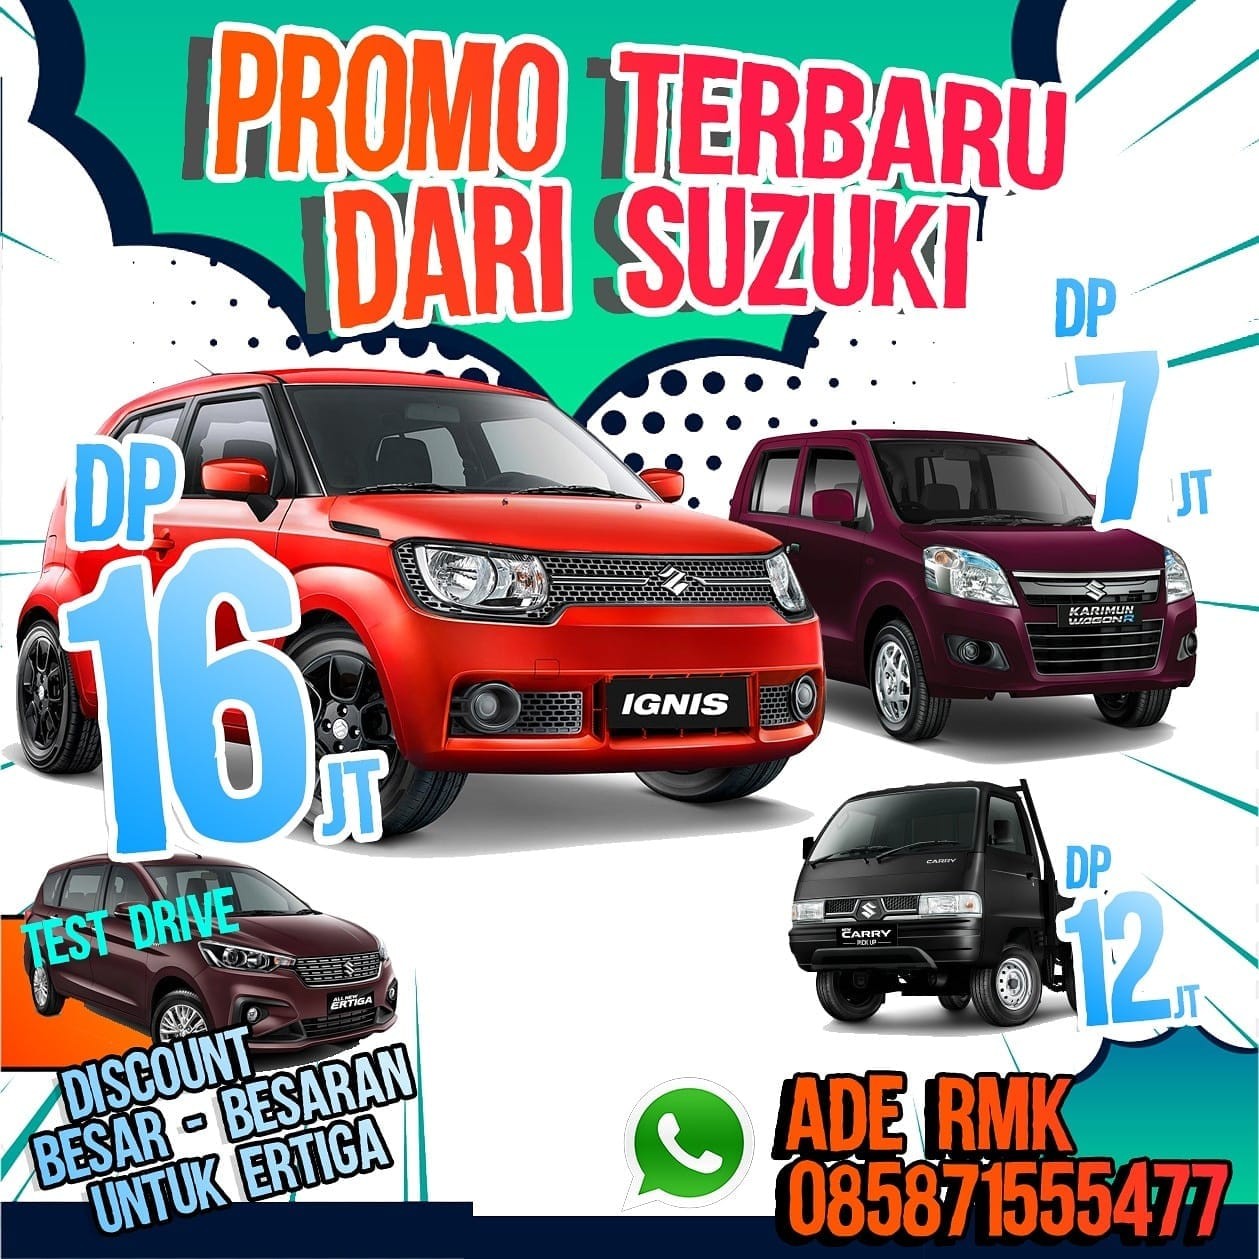 Promo 1 By Ade